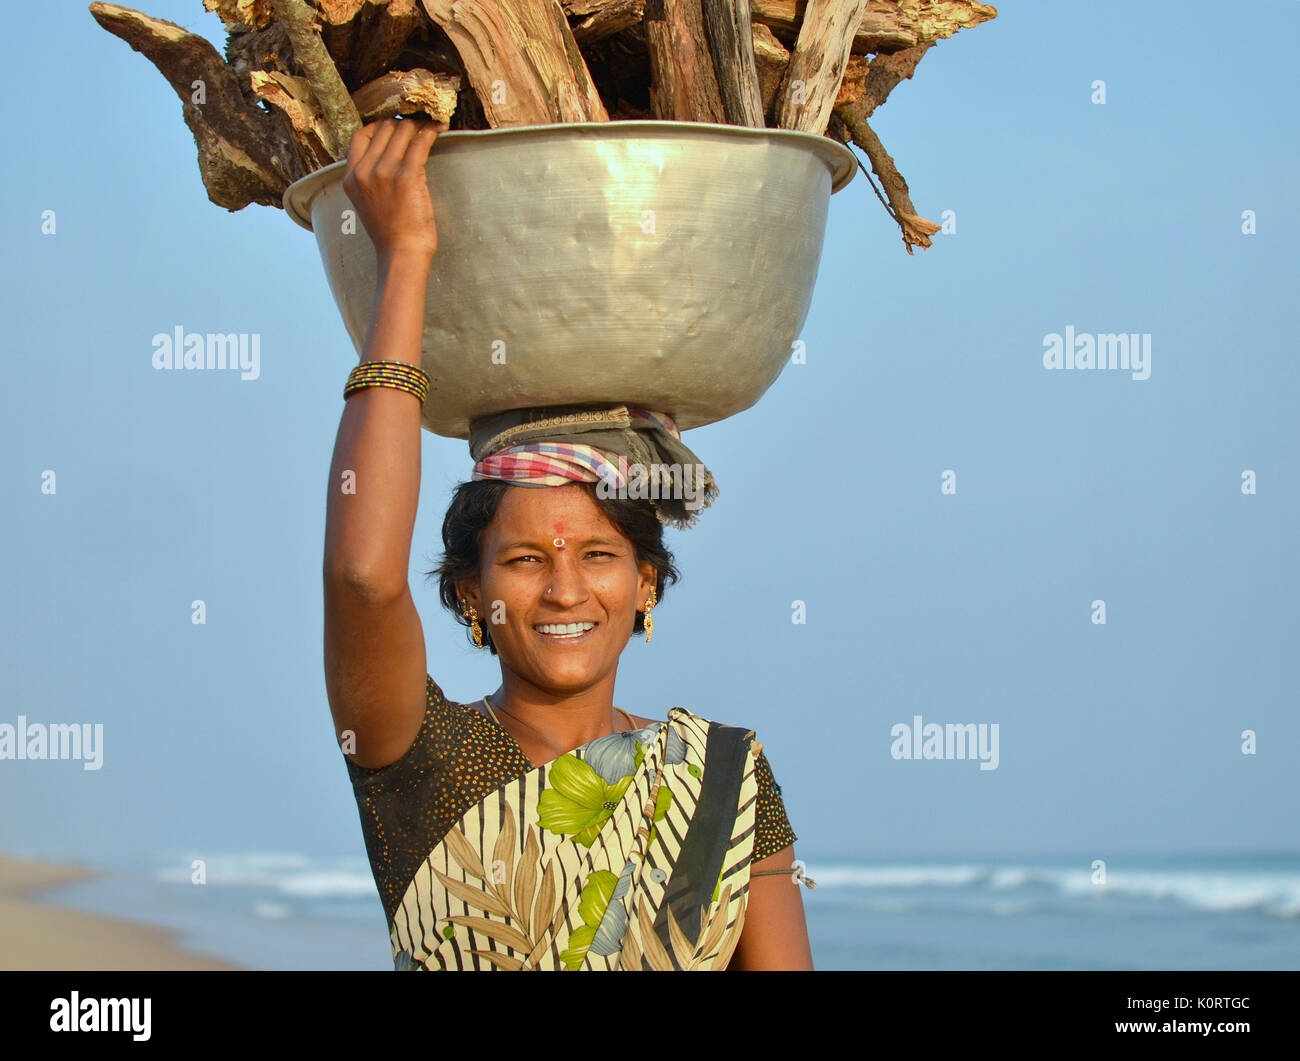 Young Orissan woman from the local fishing community at Puri, carrying a heavy load of firewood on her head. - Stock Image